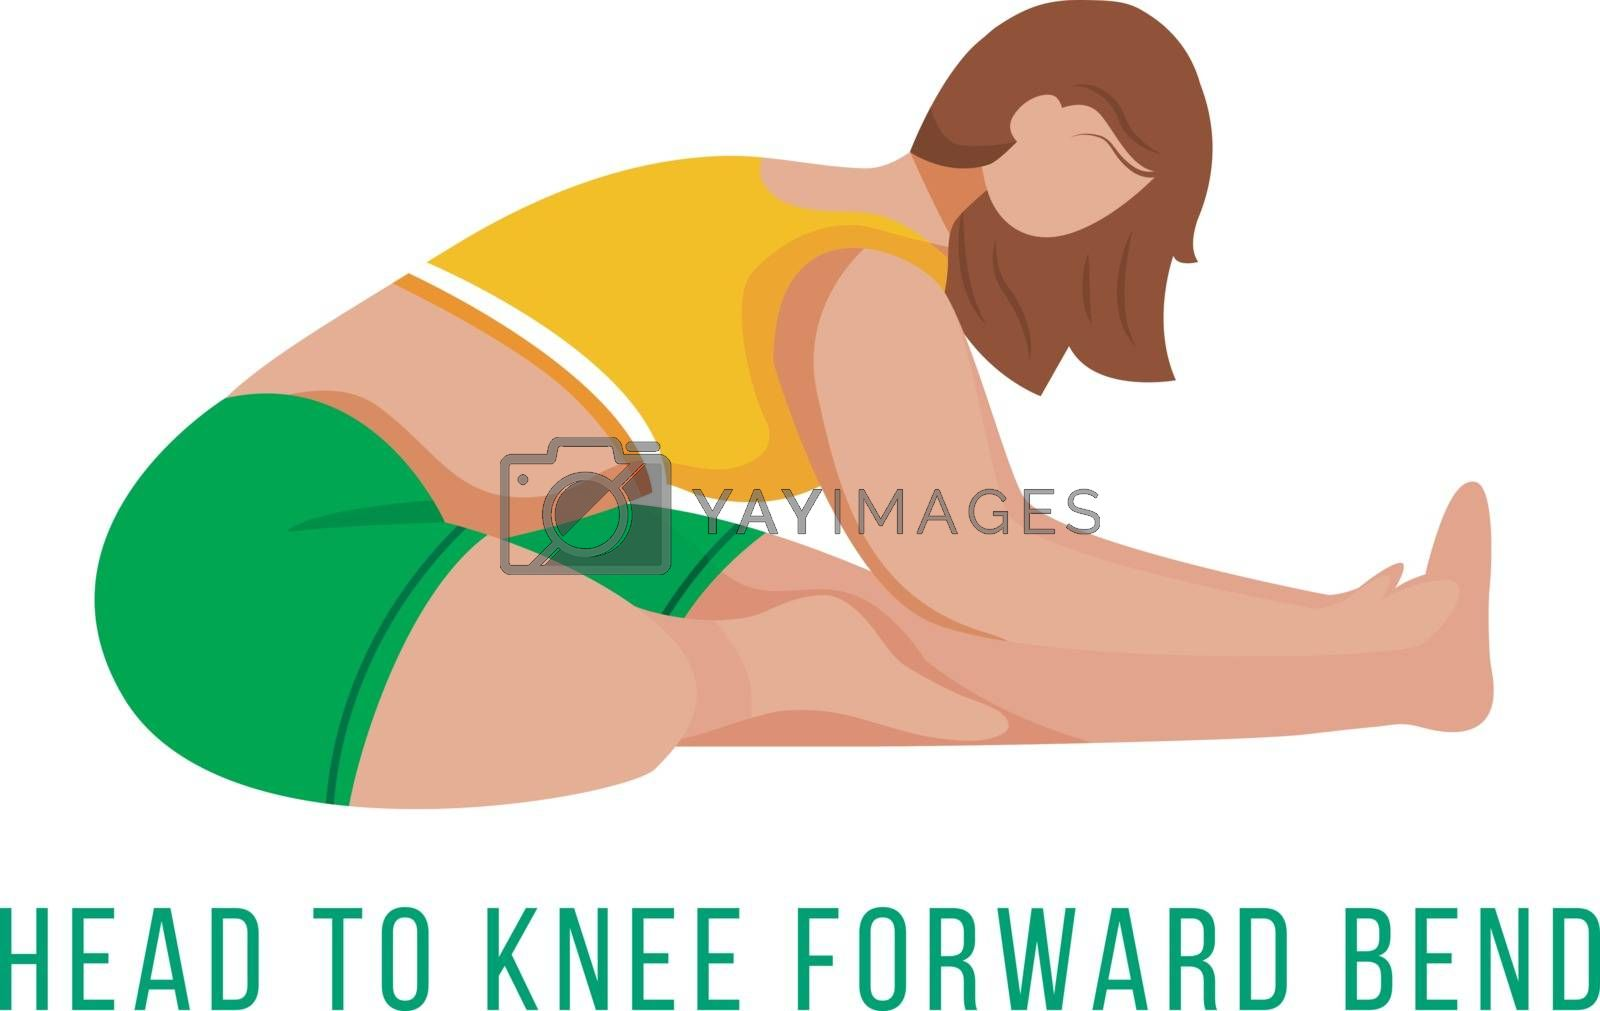 Head to knee forward bend flat vector illustration. Janu Sirsasana. Caucausian woman performing yoga posture in green and yellow sportswear. Workout. Isolated cartoon character on white background